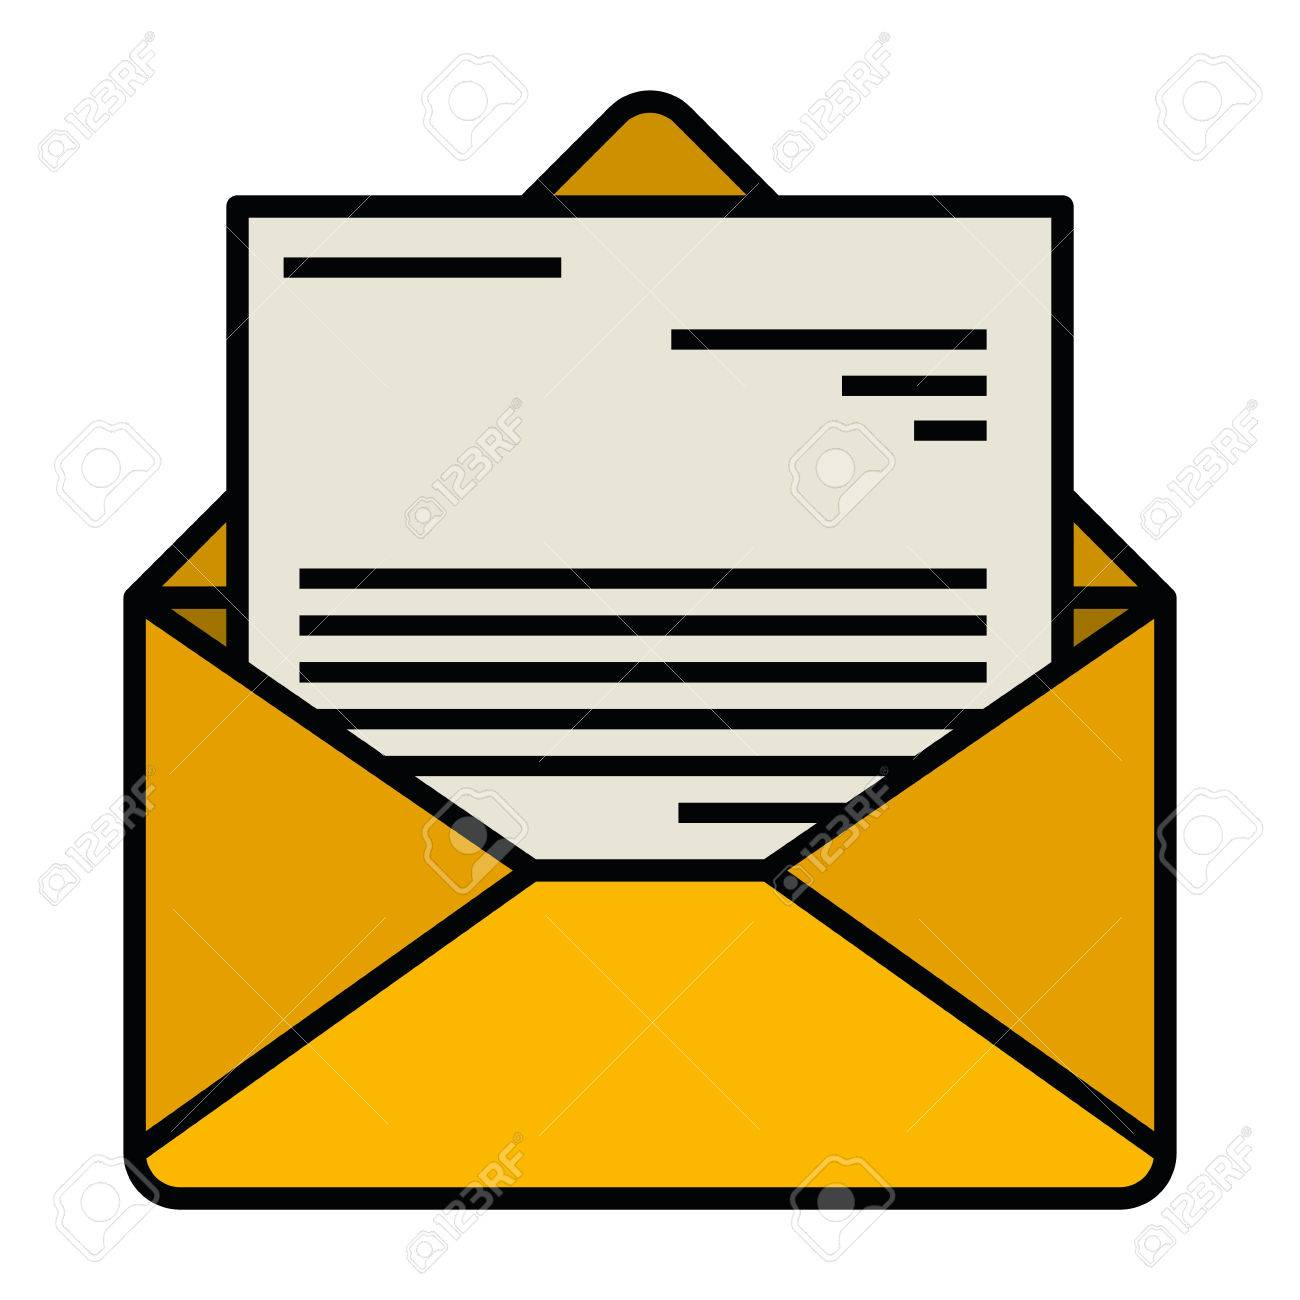 80605222-white-background-with-colorful-silhouette-of-envelope-mail-opened-with-letter-with-thick-contour-vec.jpg